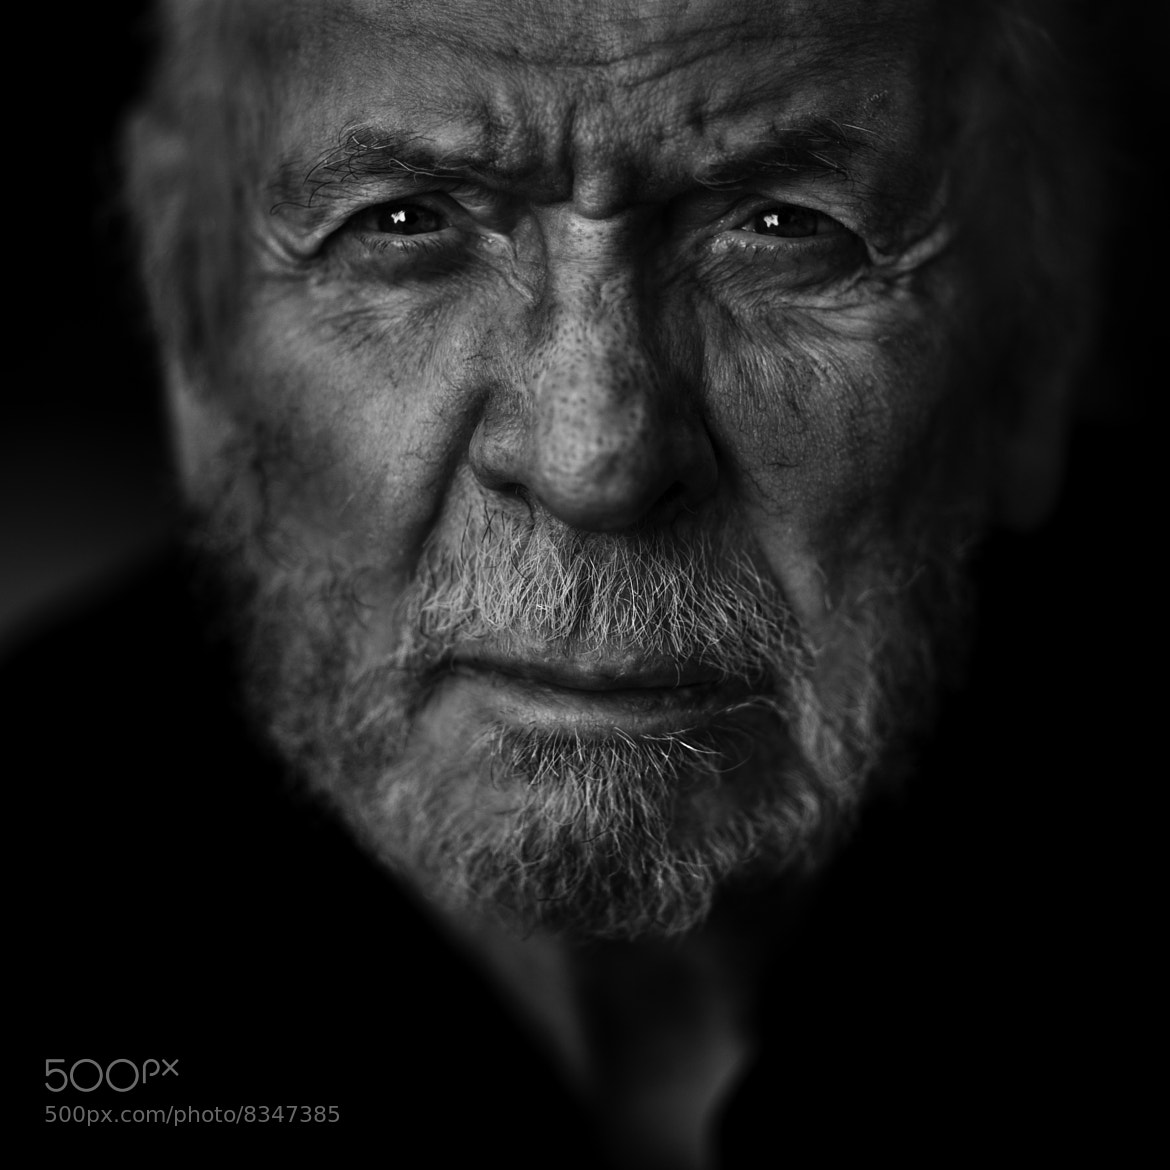 Photograph Herbert Kretzmer by Betina La Plante on 500px